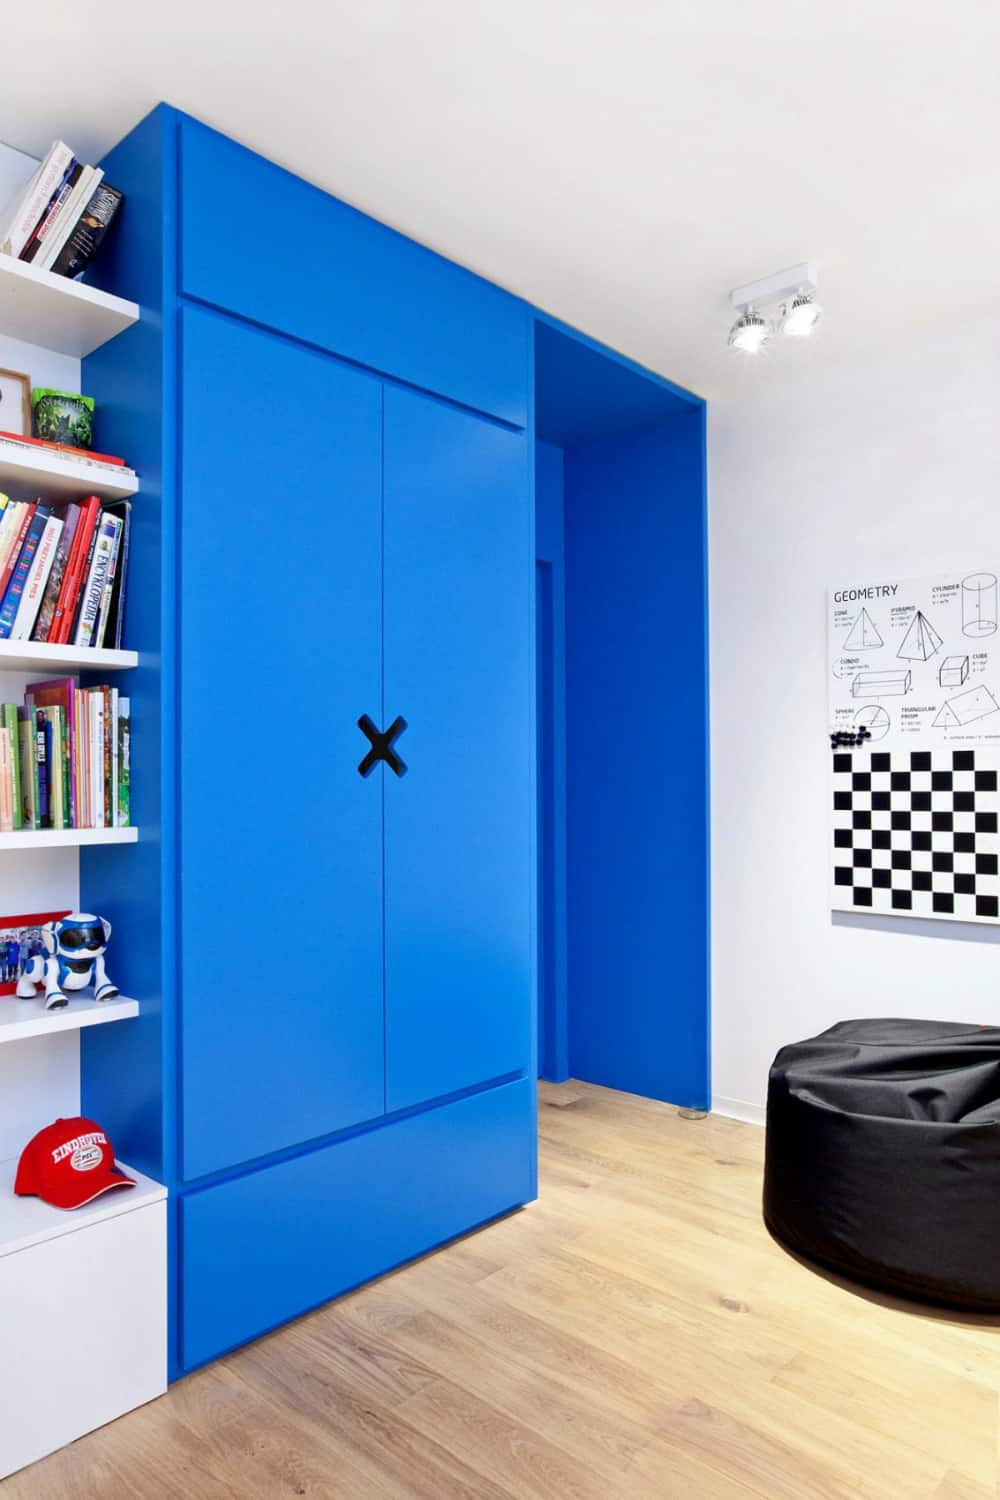 Bright blue closet makes for another bright element in a white room